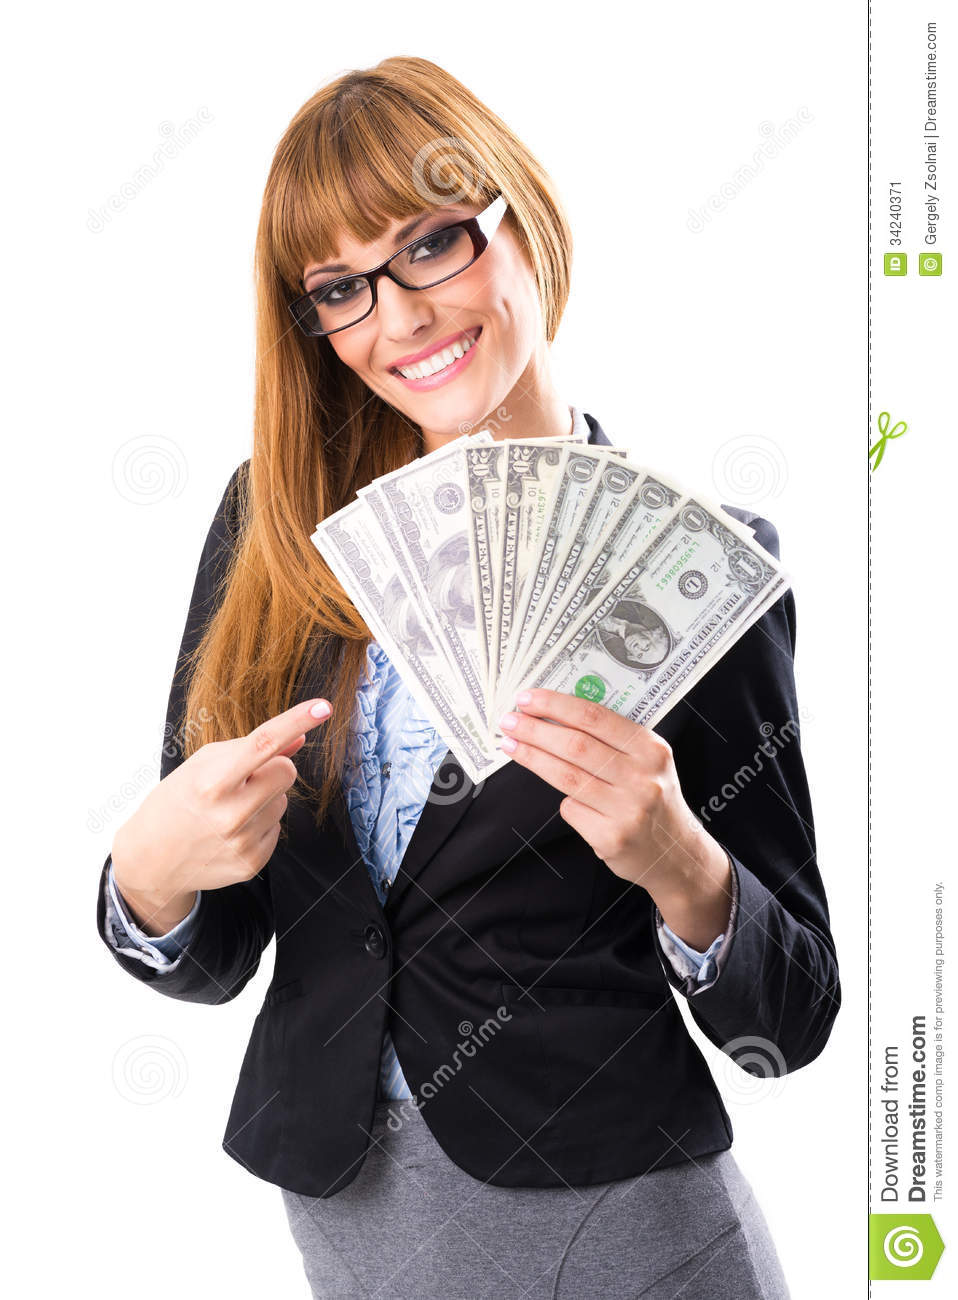 Rich Woman Clipart Rich Business Woman Holding